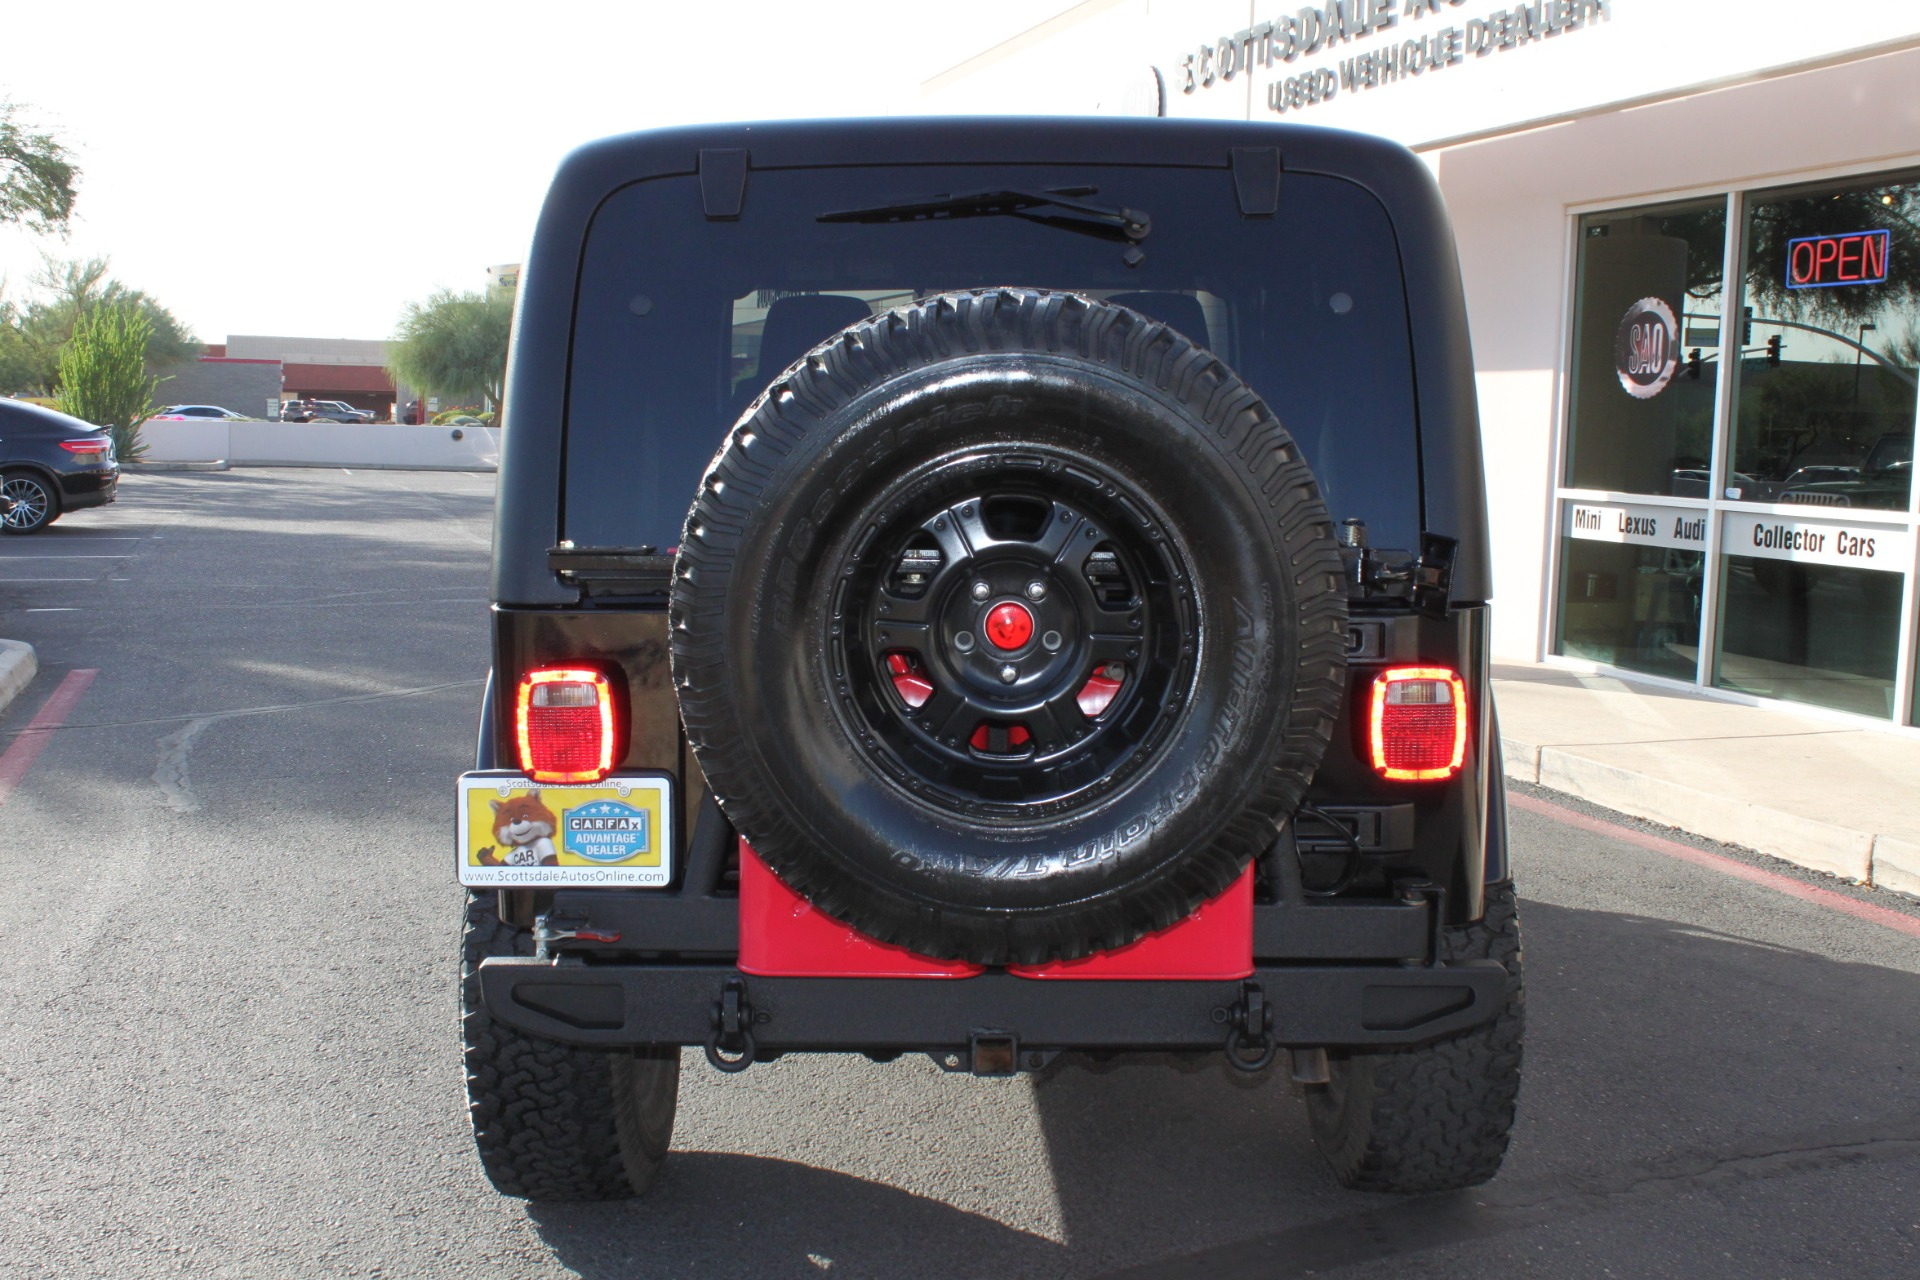 Used-2006-Jeep-Wrangler-Unlimited-Rubicon-LWB-Mopar